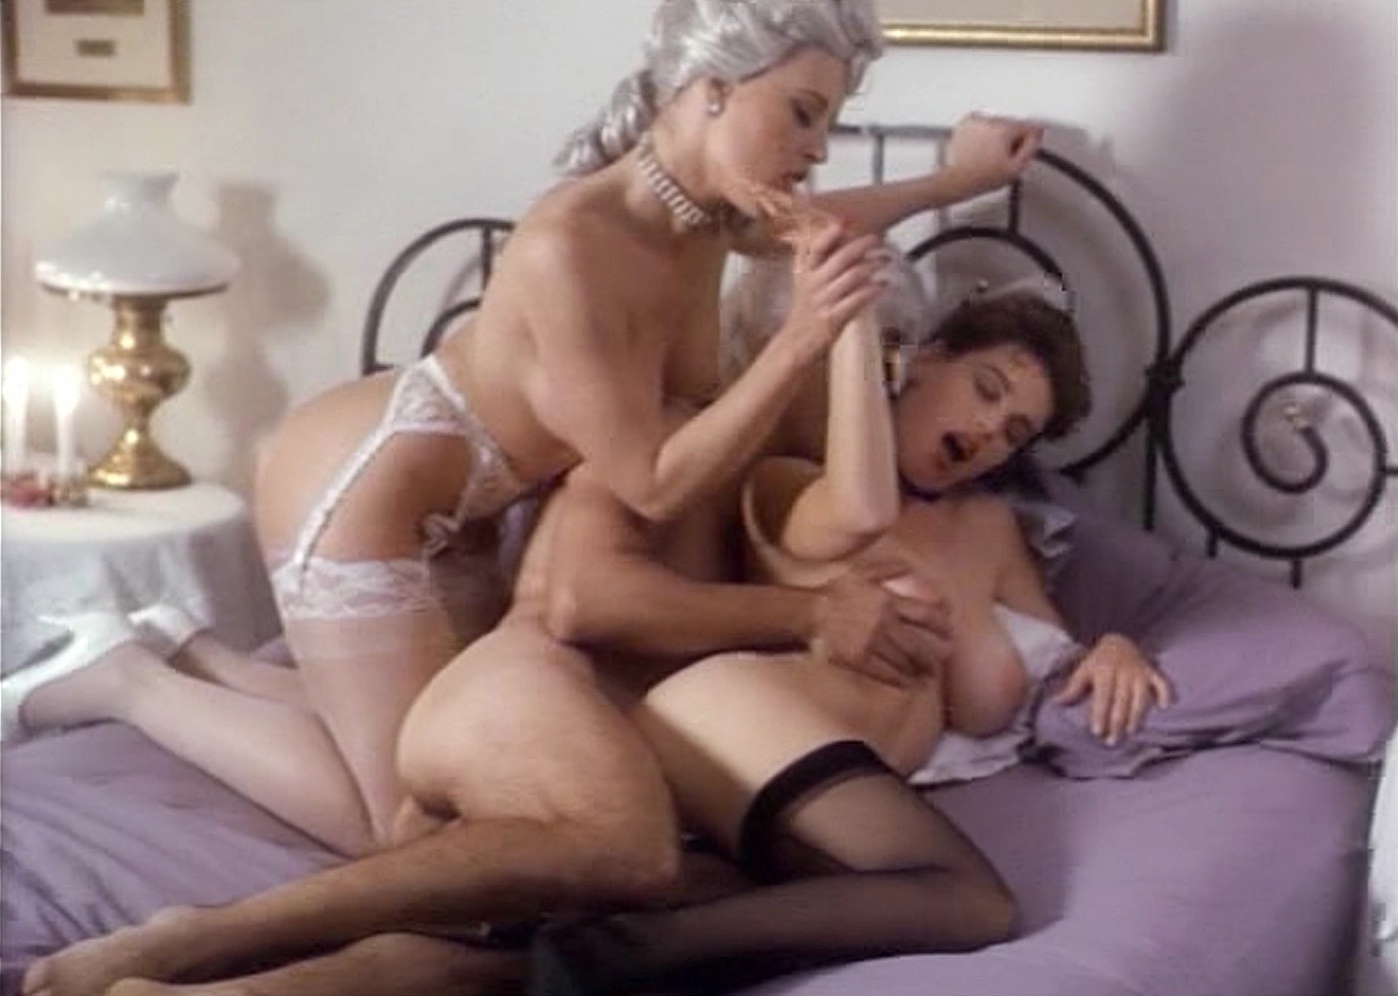 4D Porn shannon whirry threesome sex in animal instincts porn 4d